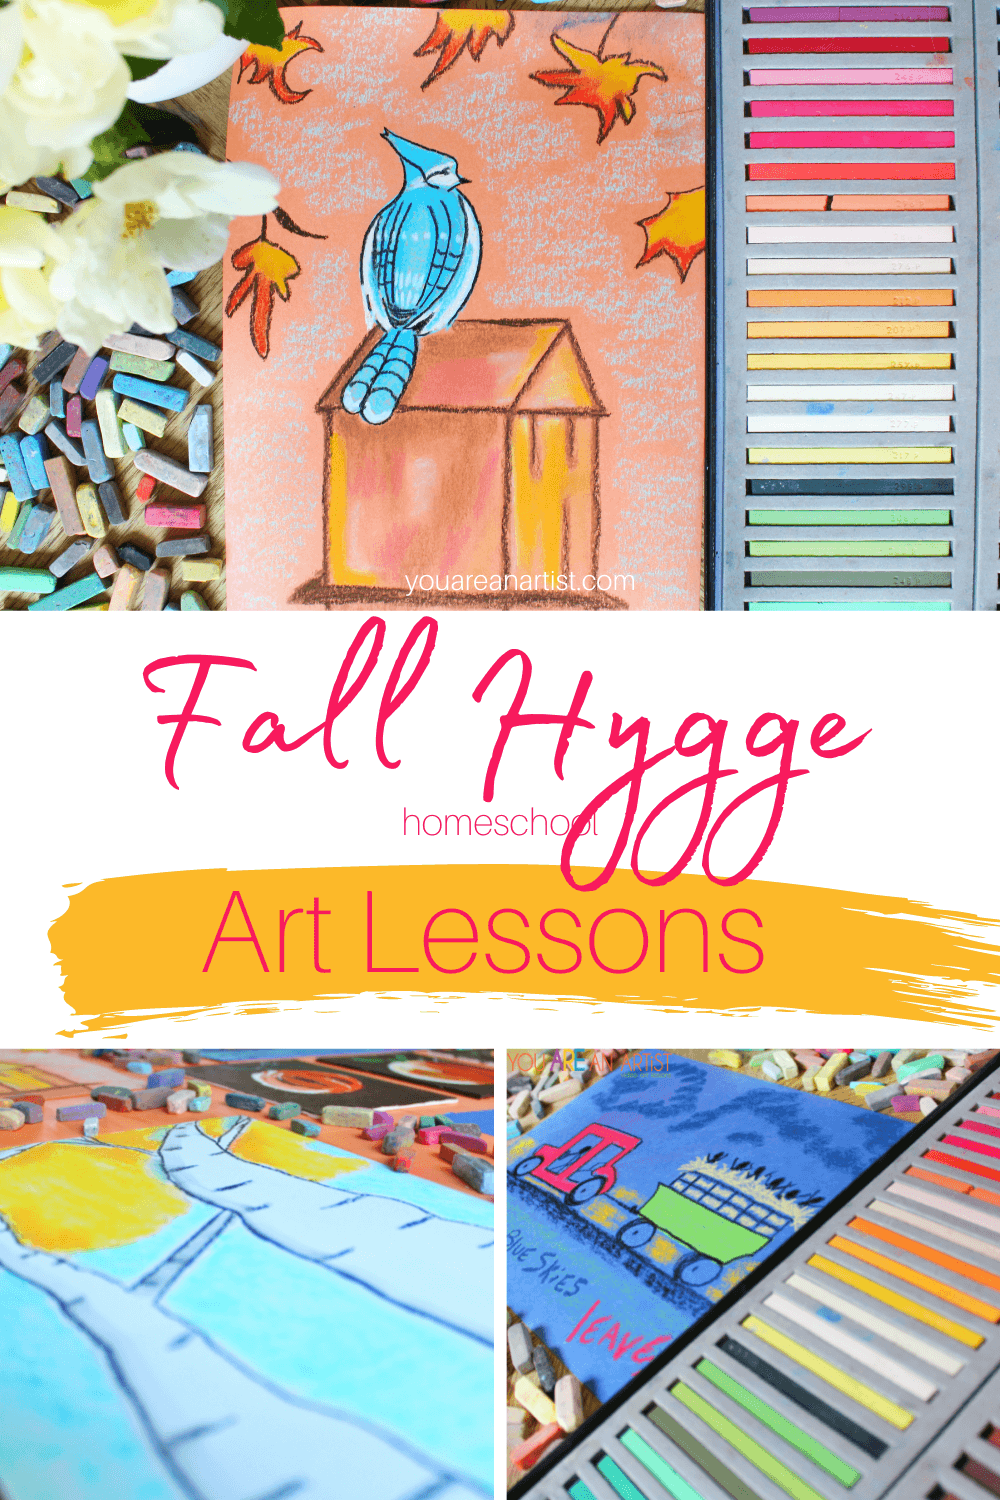 Fall Hygge Homeschool Art Lessons:Here are some super simple ideas on ways to create a fall hygge homeschool art lesson with items you may already have on hand or within easy reach. #fall #fallhygge #chalkpastels #homeschool #homeschoolartlessons